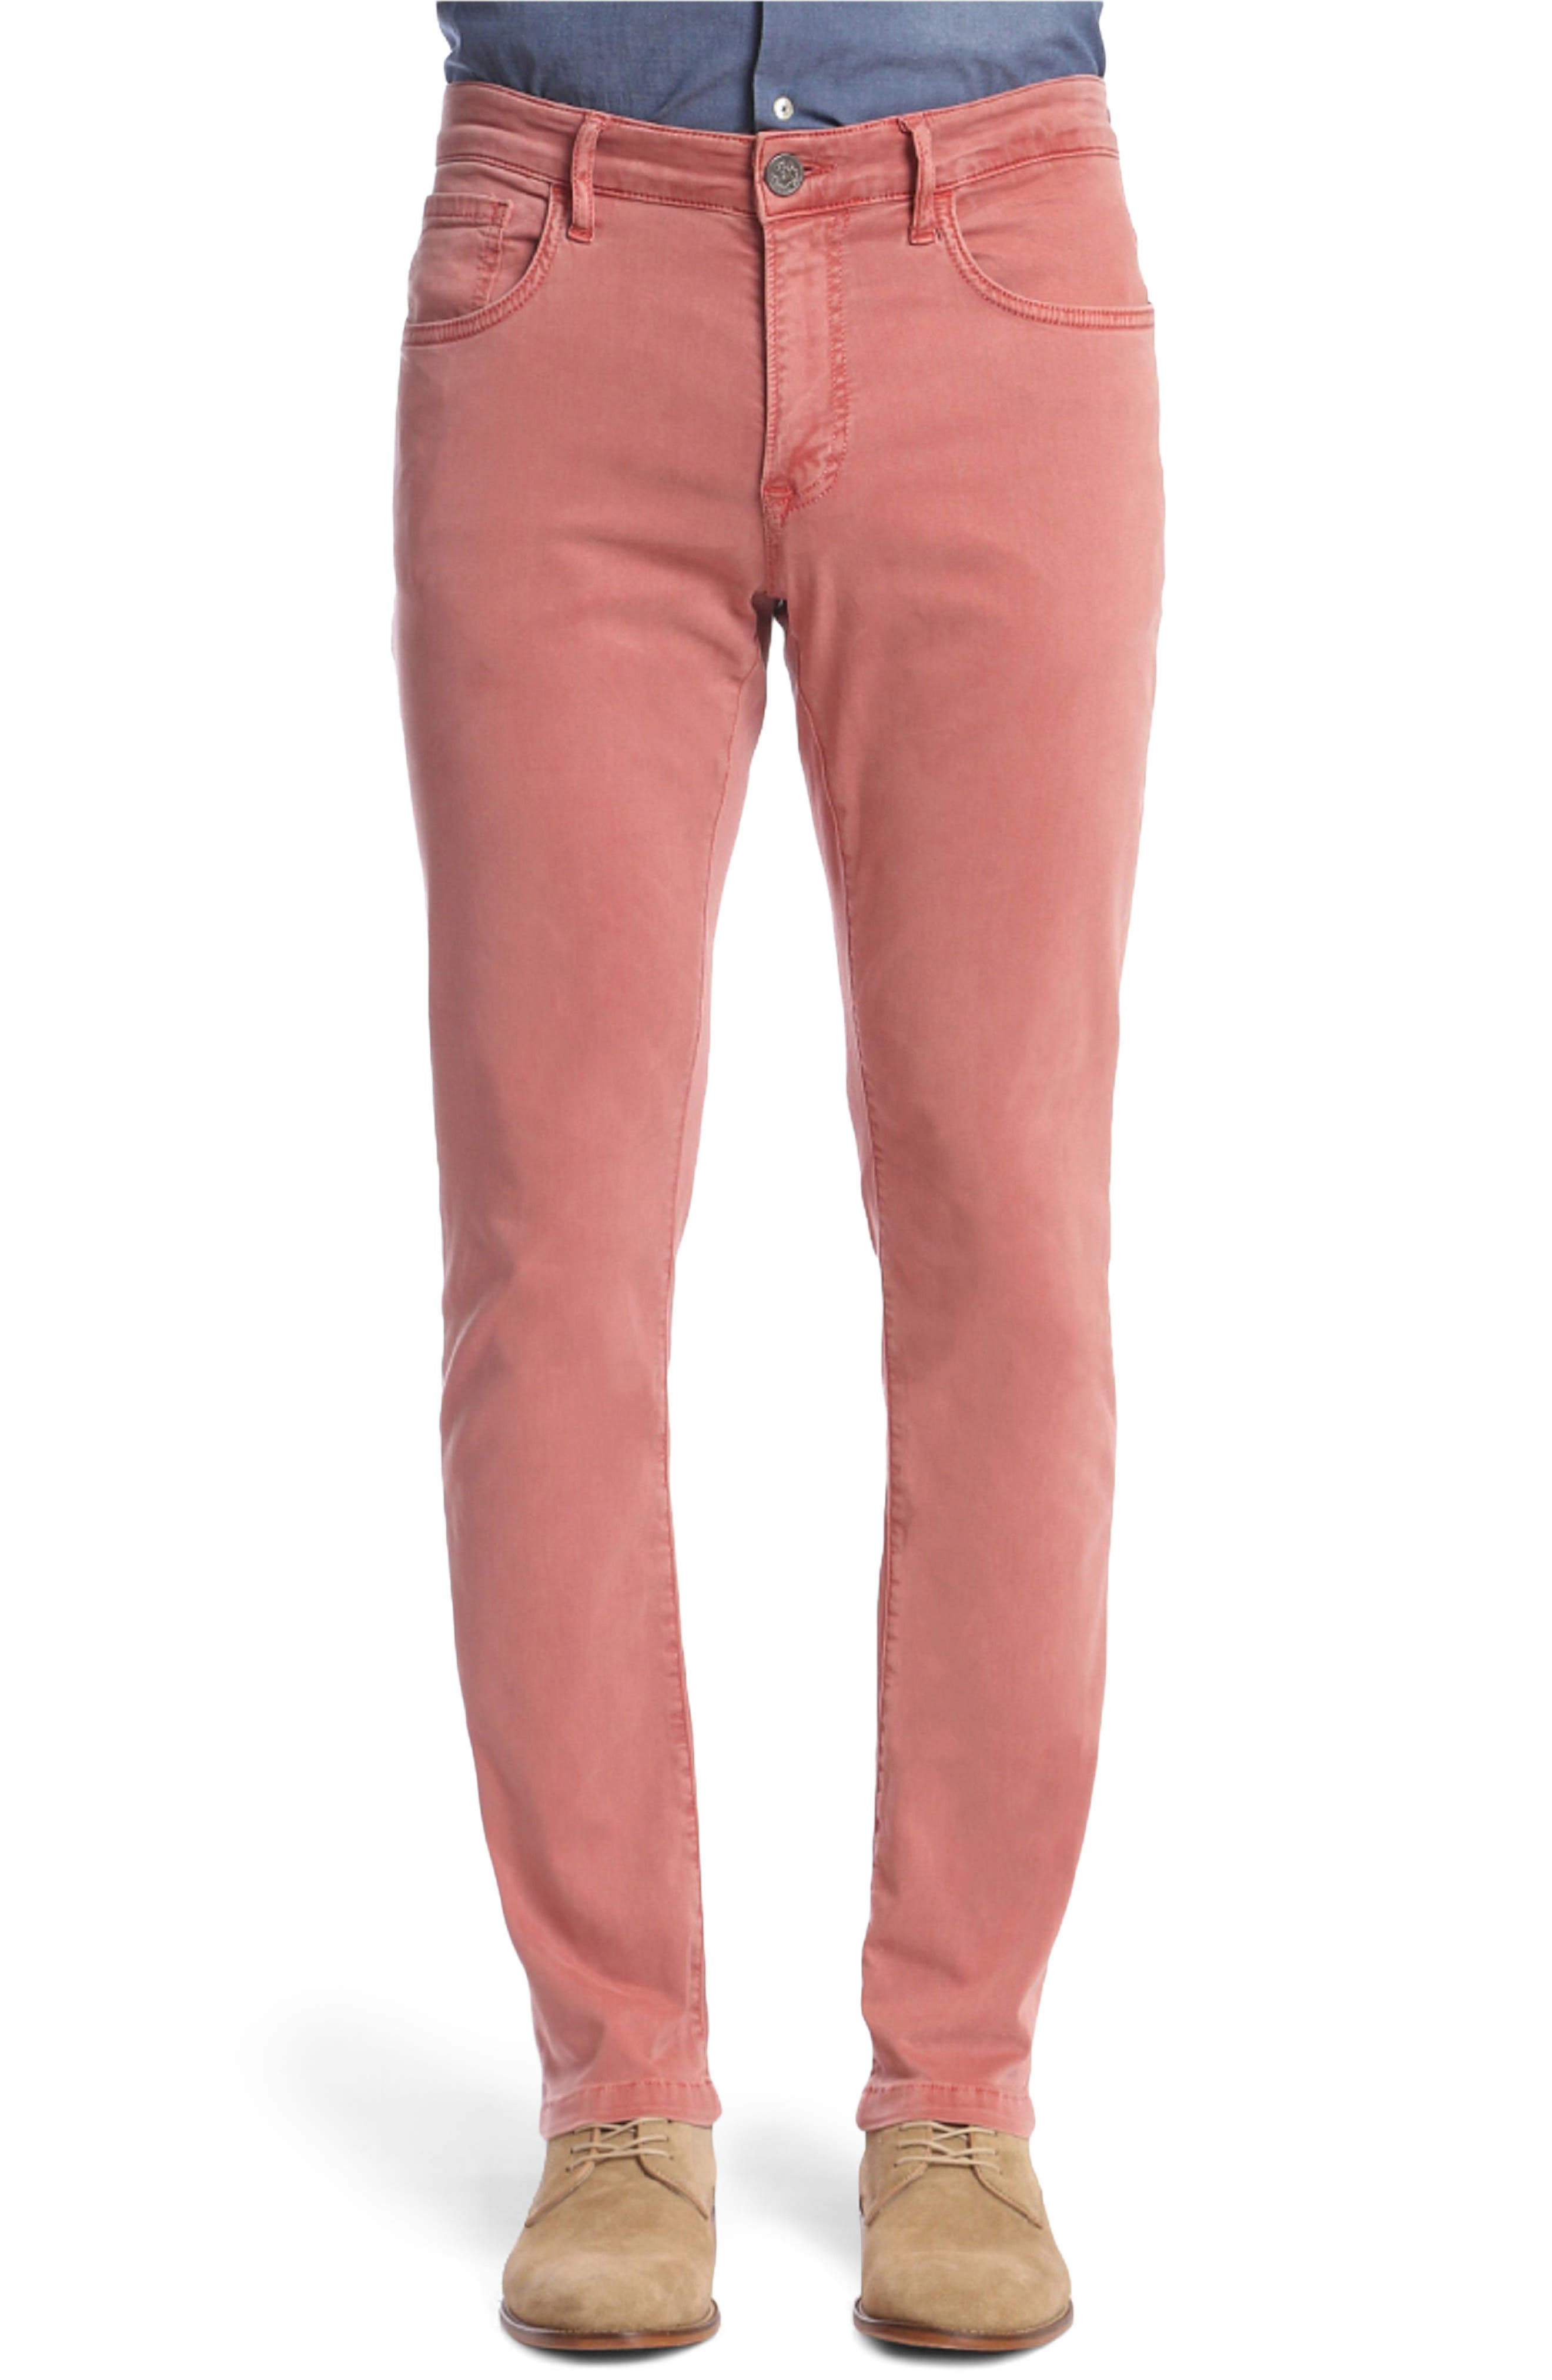 Main Image - 34 Heritage Charisma Relaxed Fit Twill Pants (Brick)